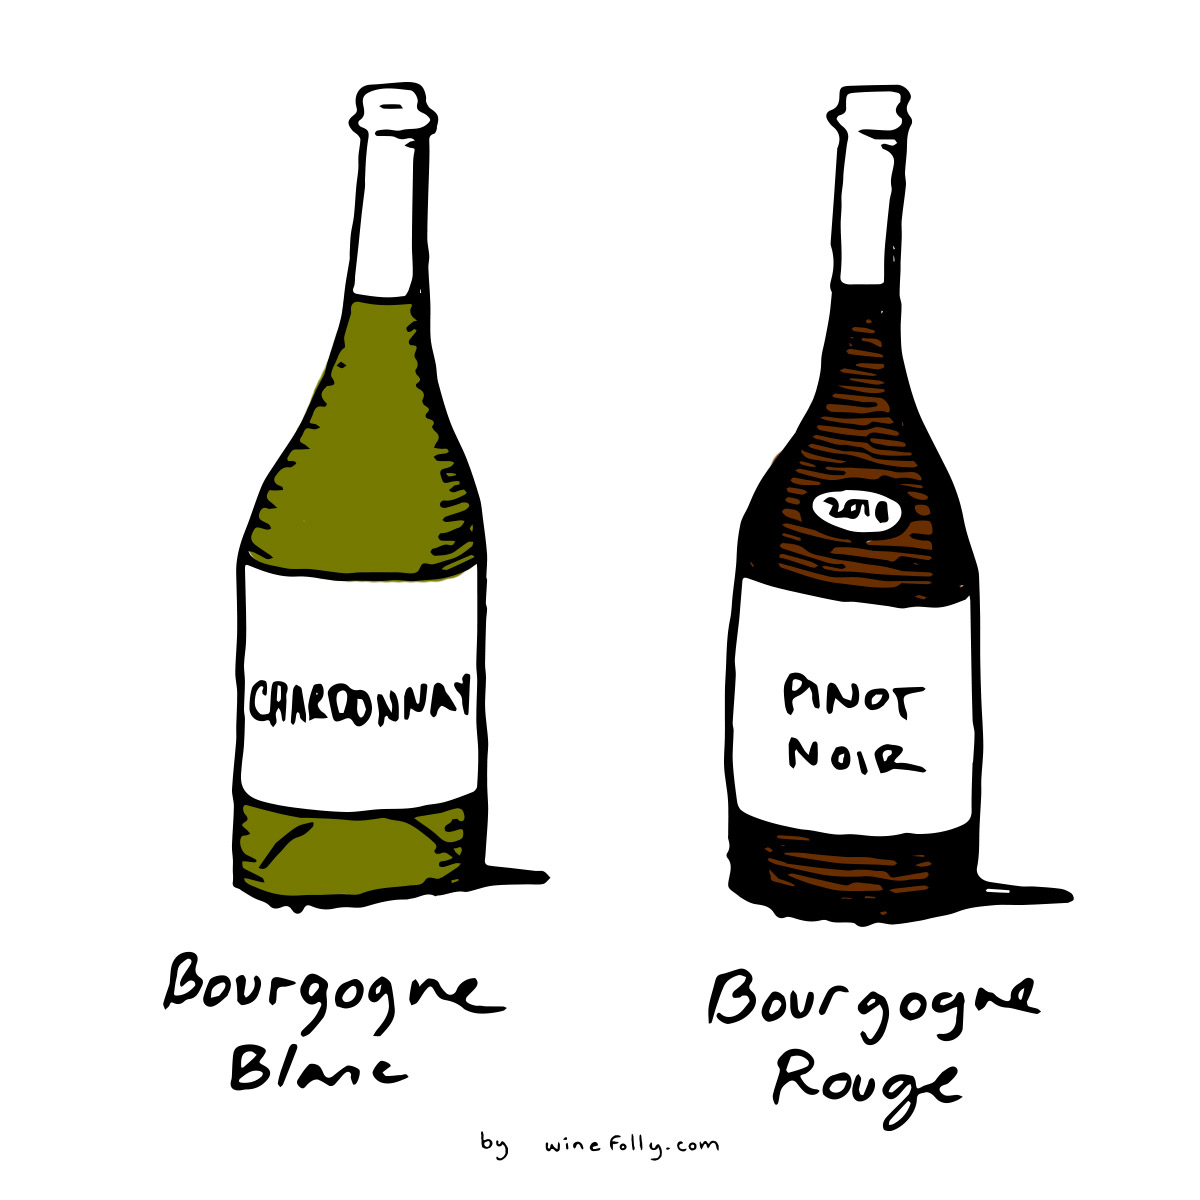 Chardonnay and Pinot Noir are the two primary grapes of Bourgogne (Burgundy) Blanc and Rouge wines - illustration by Wine Folly